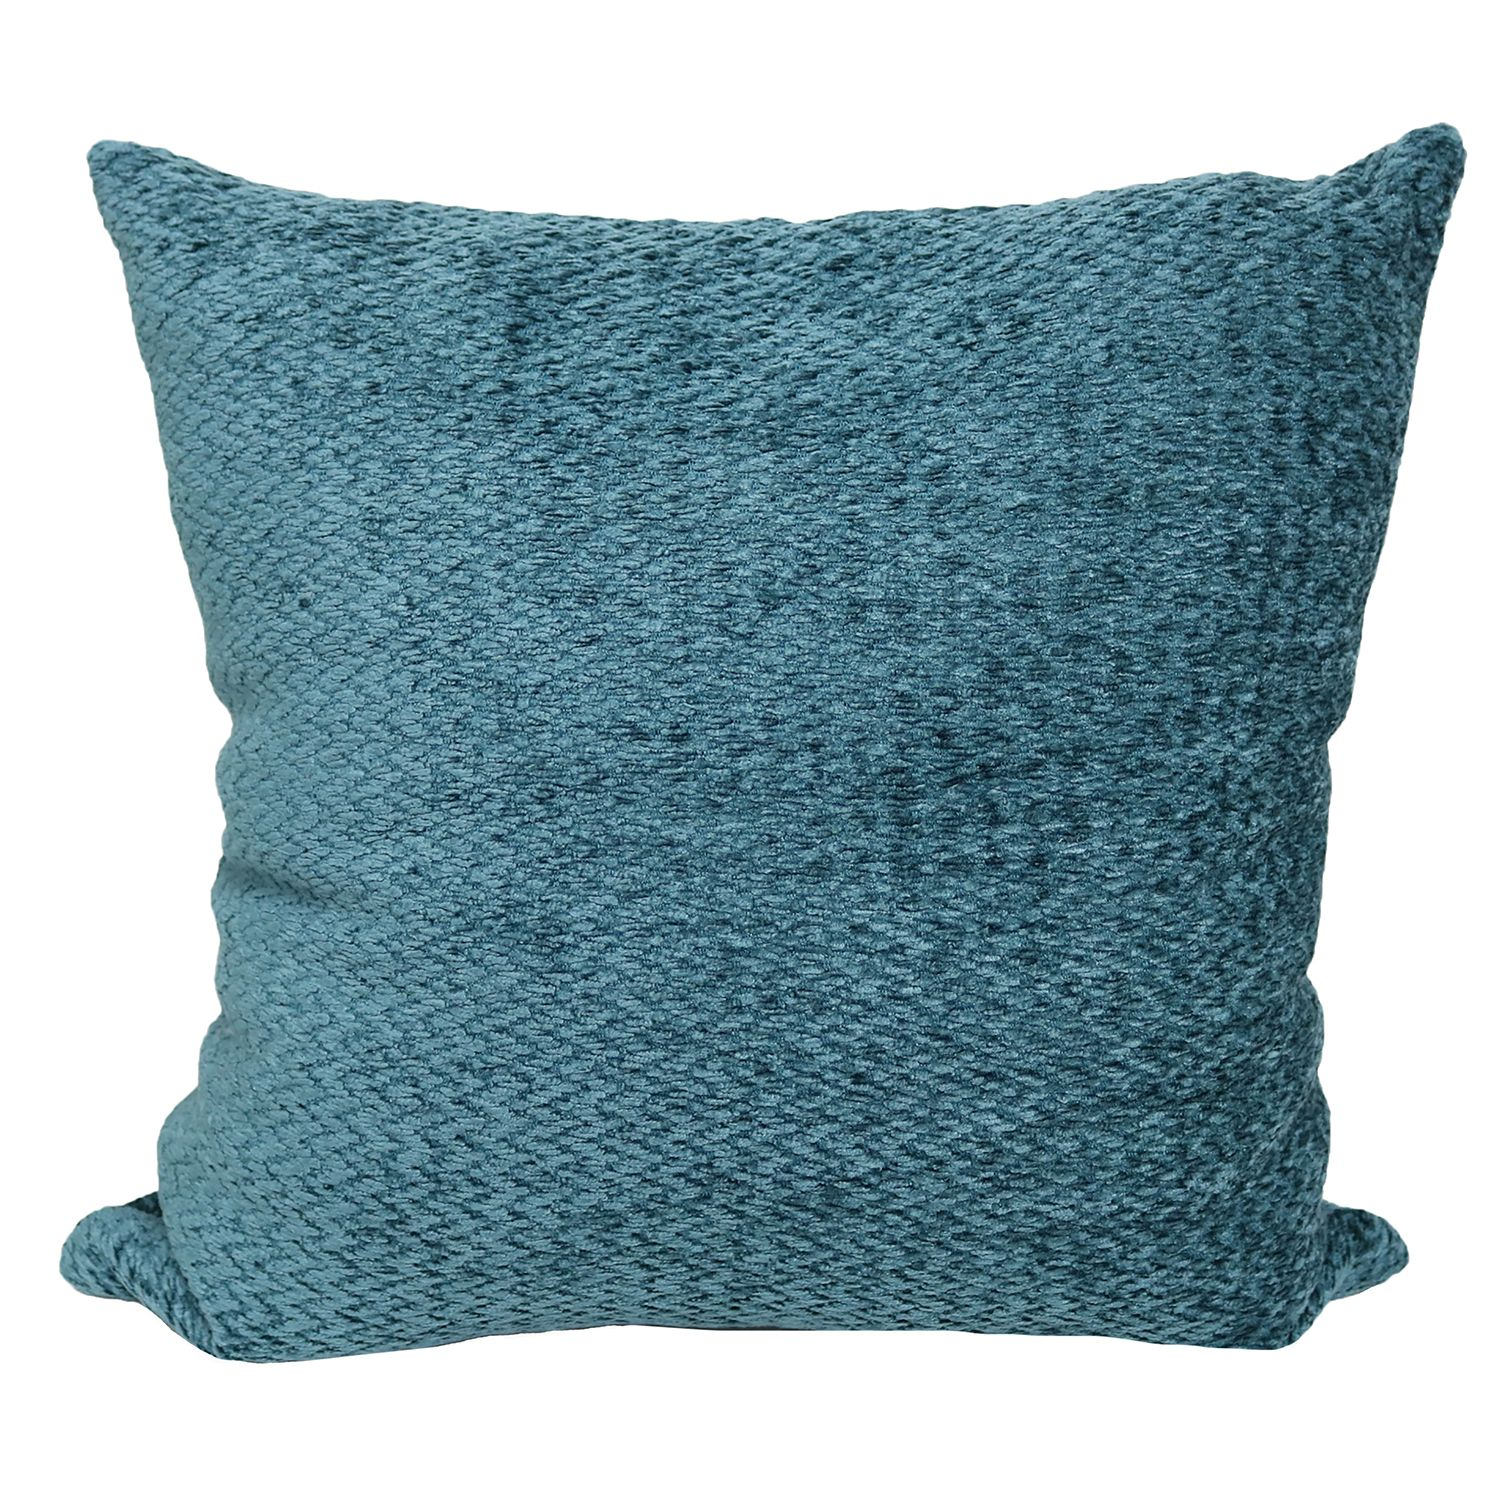 fairfield chenille throw pillow - Toss Pillows